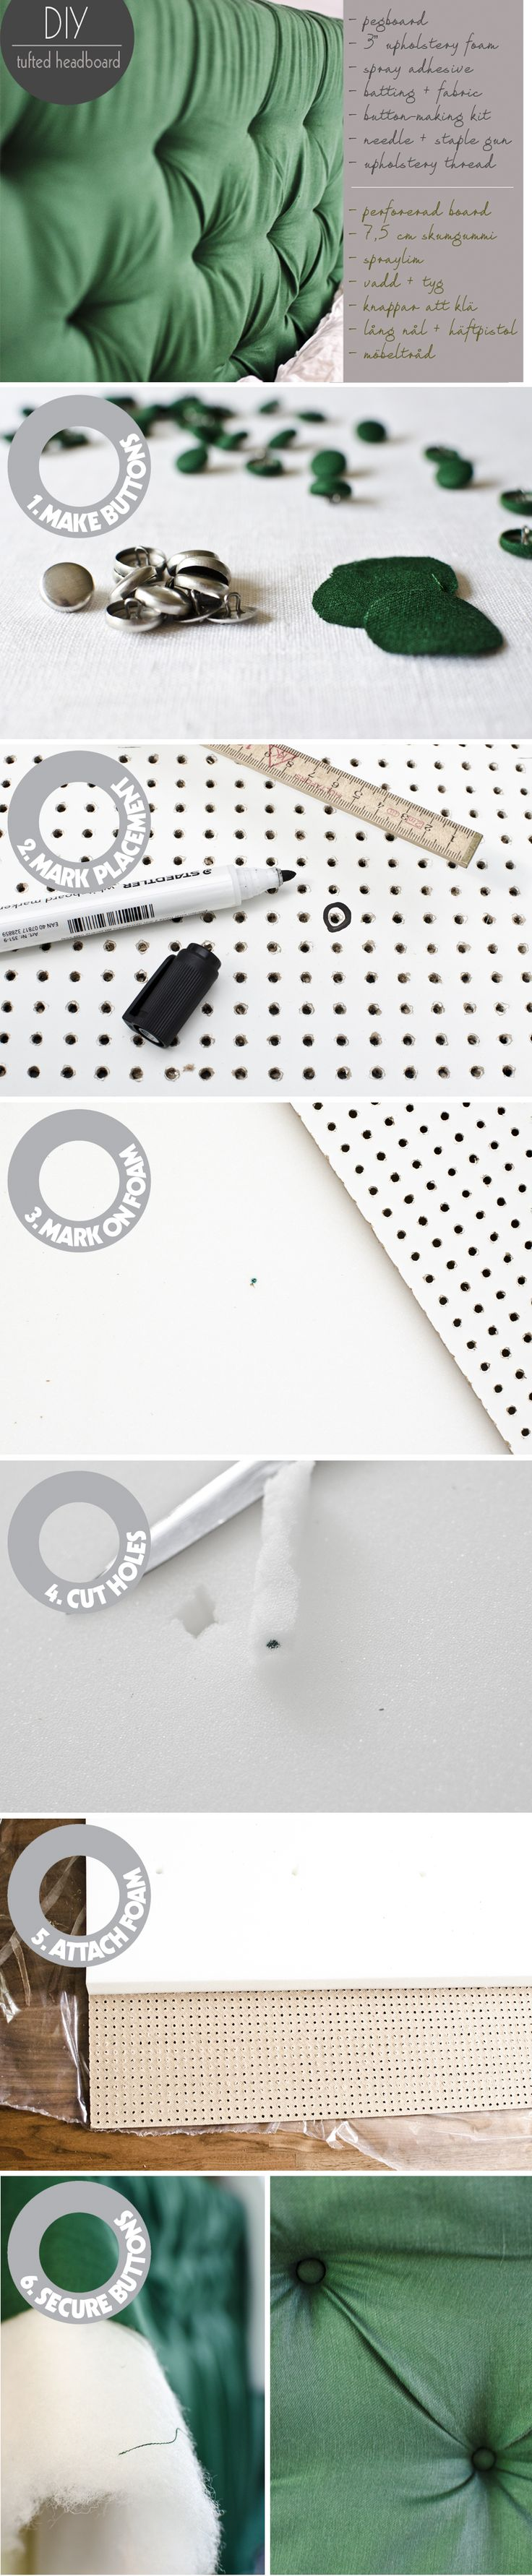 Brilliant! Peg board to make a tufted headboard, etc.